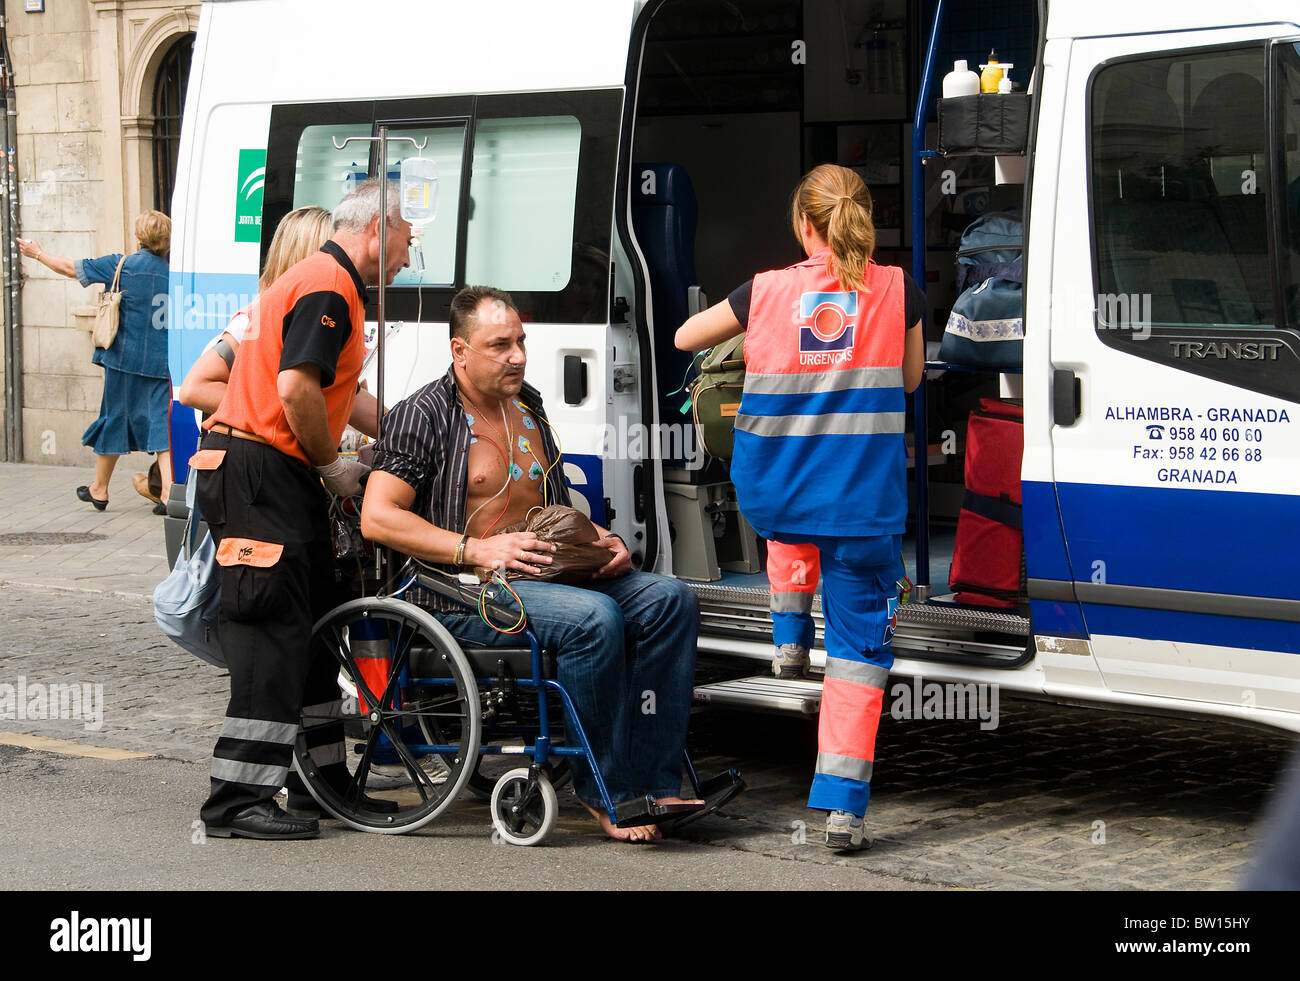 Granada First aid ambulance hospital Spain Andalusia patient doctor - Stock Image